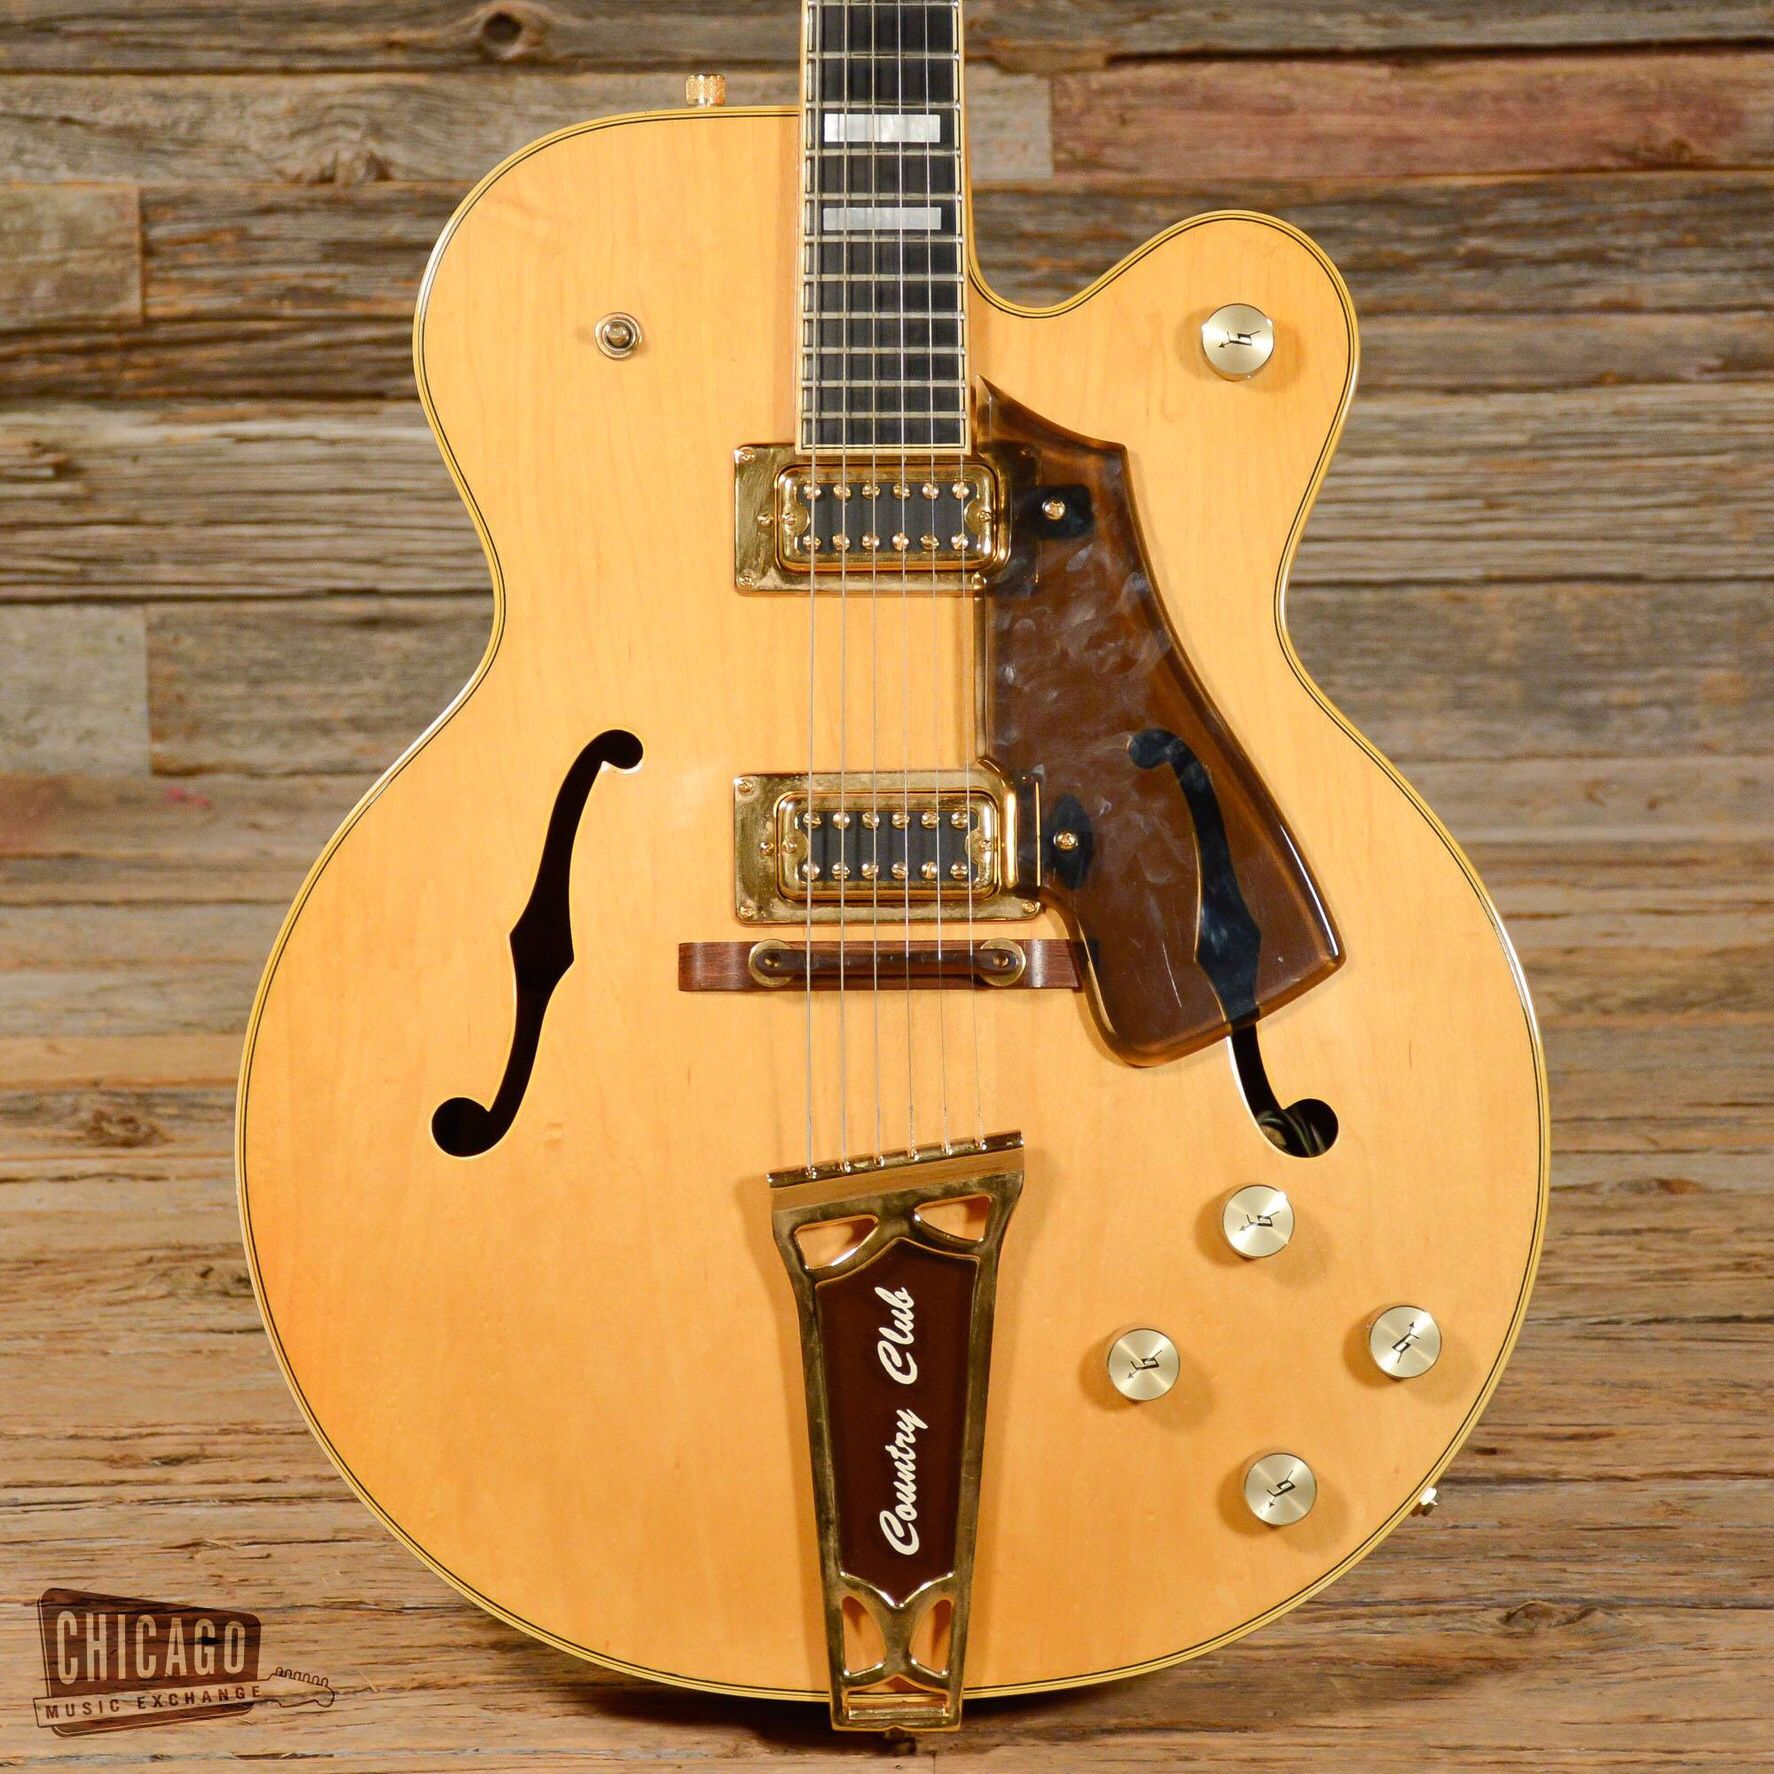 hight resolution of gretsch country gent love it archtop pinterest gretsch gretsch g5120 pickups wiring layout gretsch country